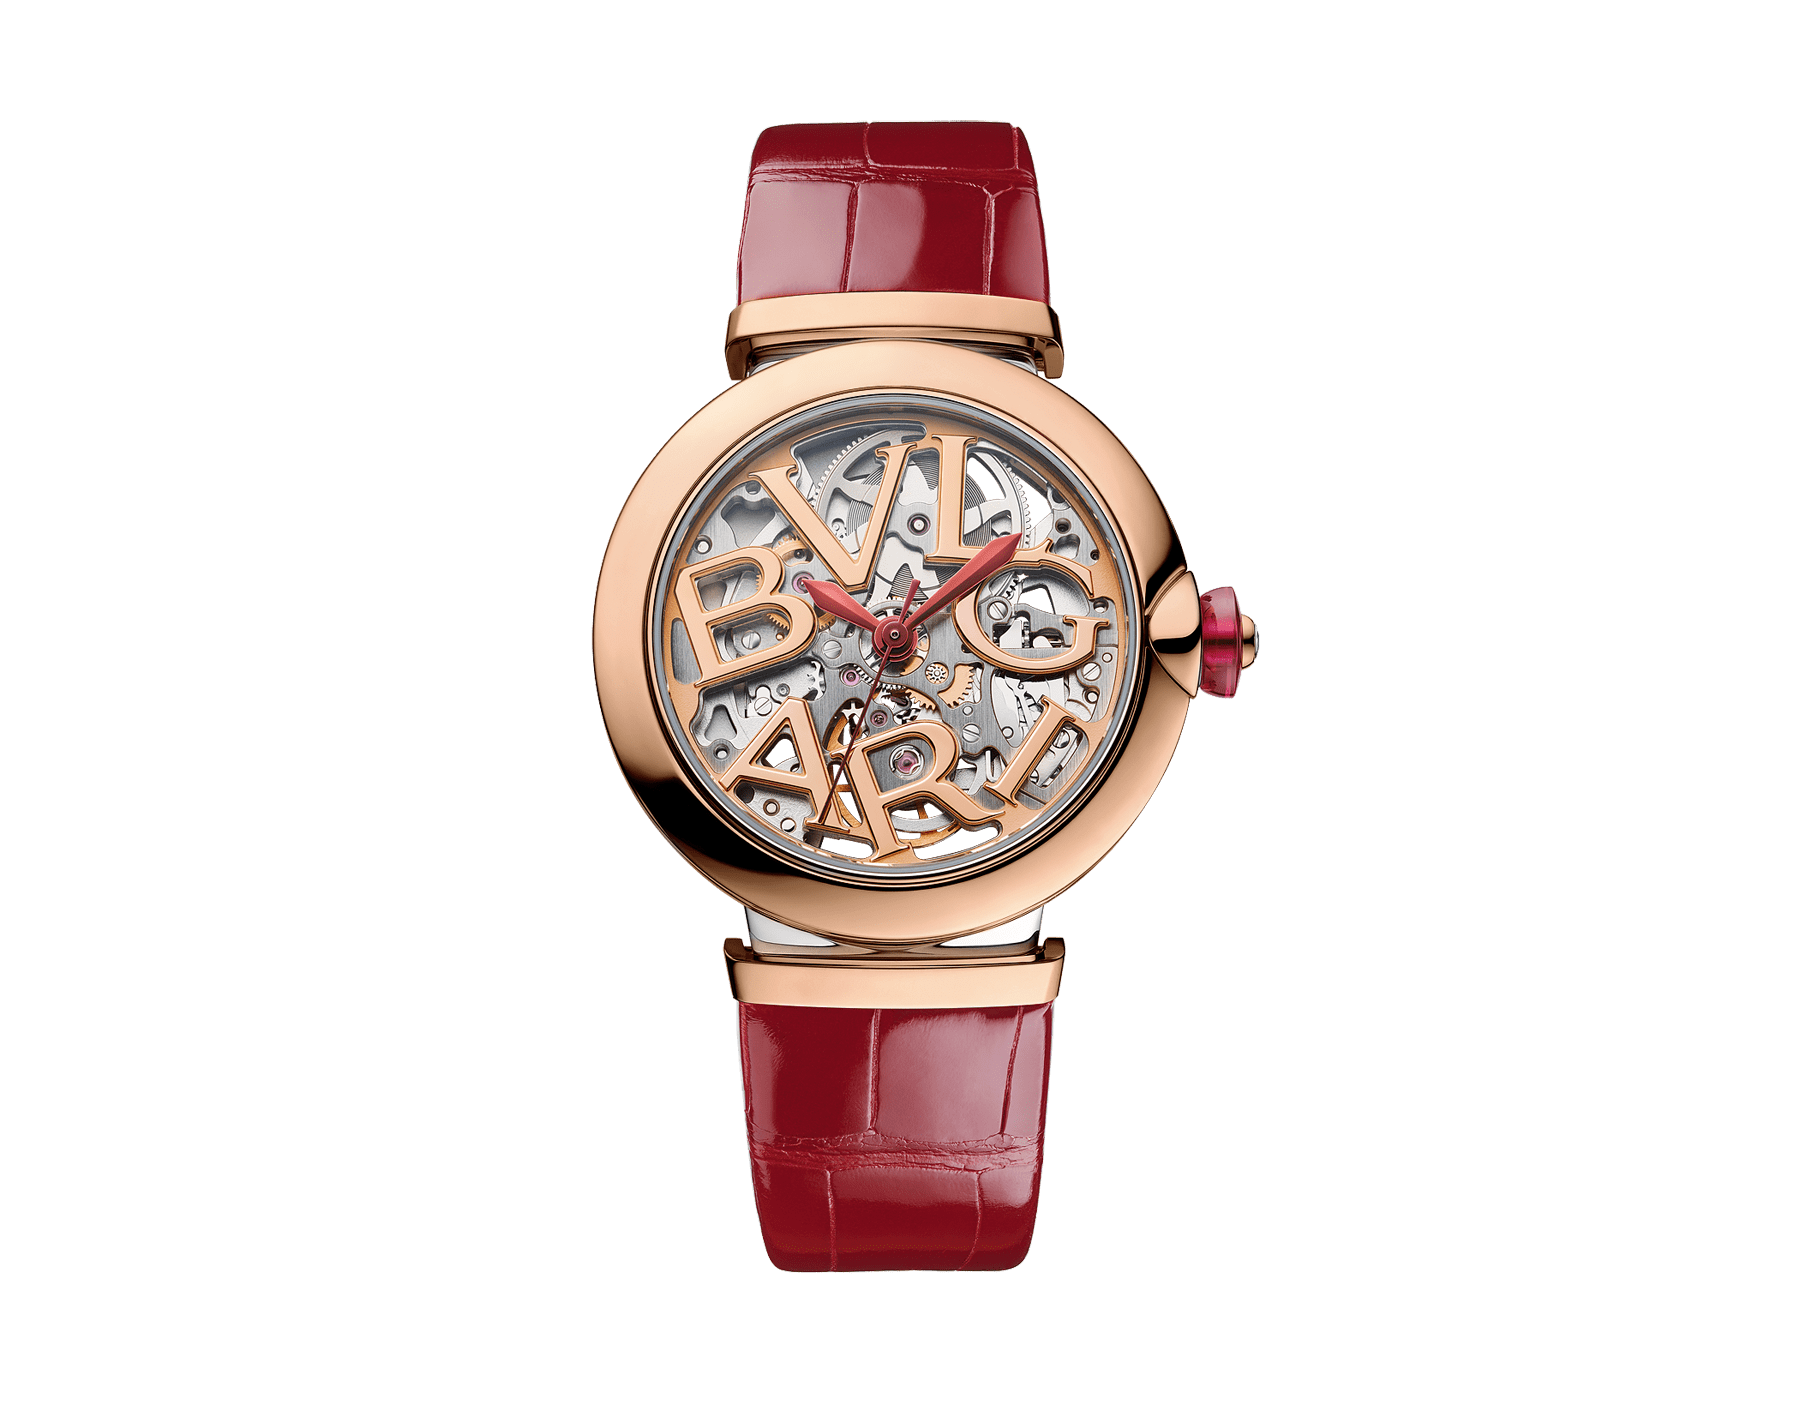 LVCEA Skeleton watch with mechanical manufacture movement, automatic winding and skeleton execution, polished stainless steel case, 18 kt rose gold bezel, openwork BVLGARI logo dial and links, and red alligator bracelet. Water-resistant up to 30 metres. 103373 image 1